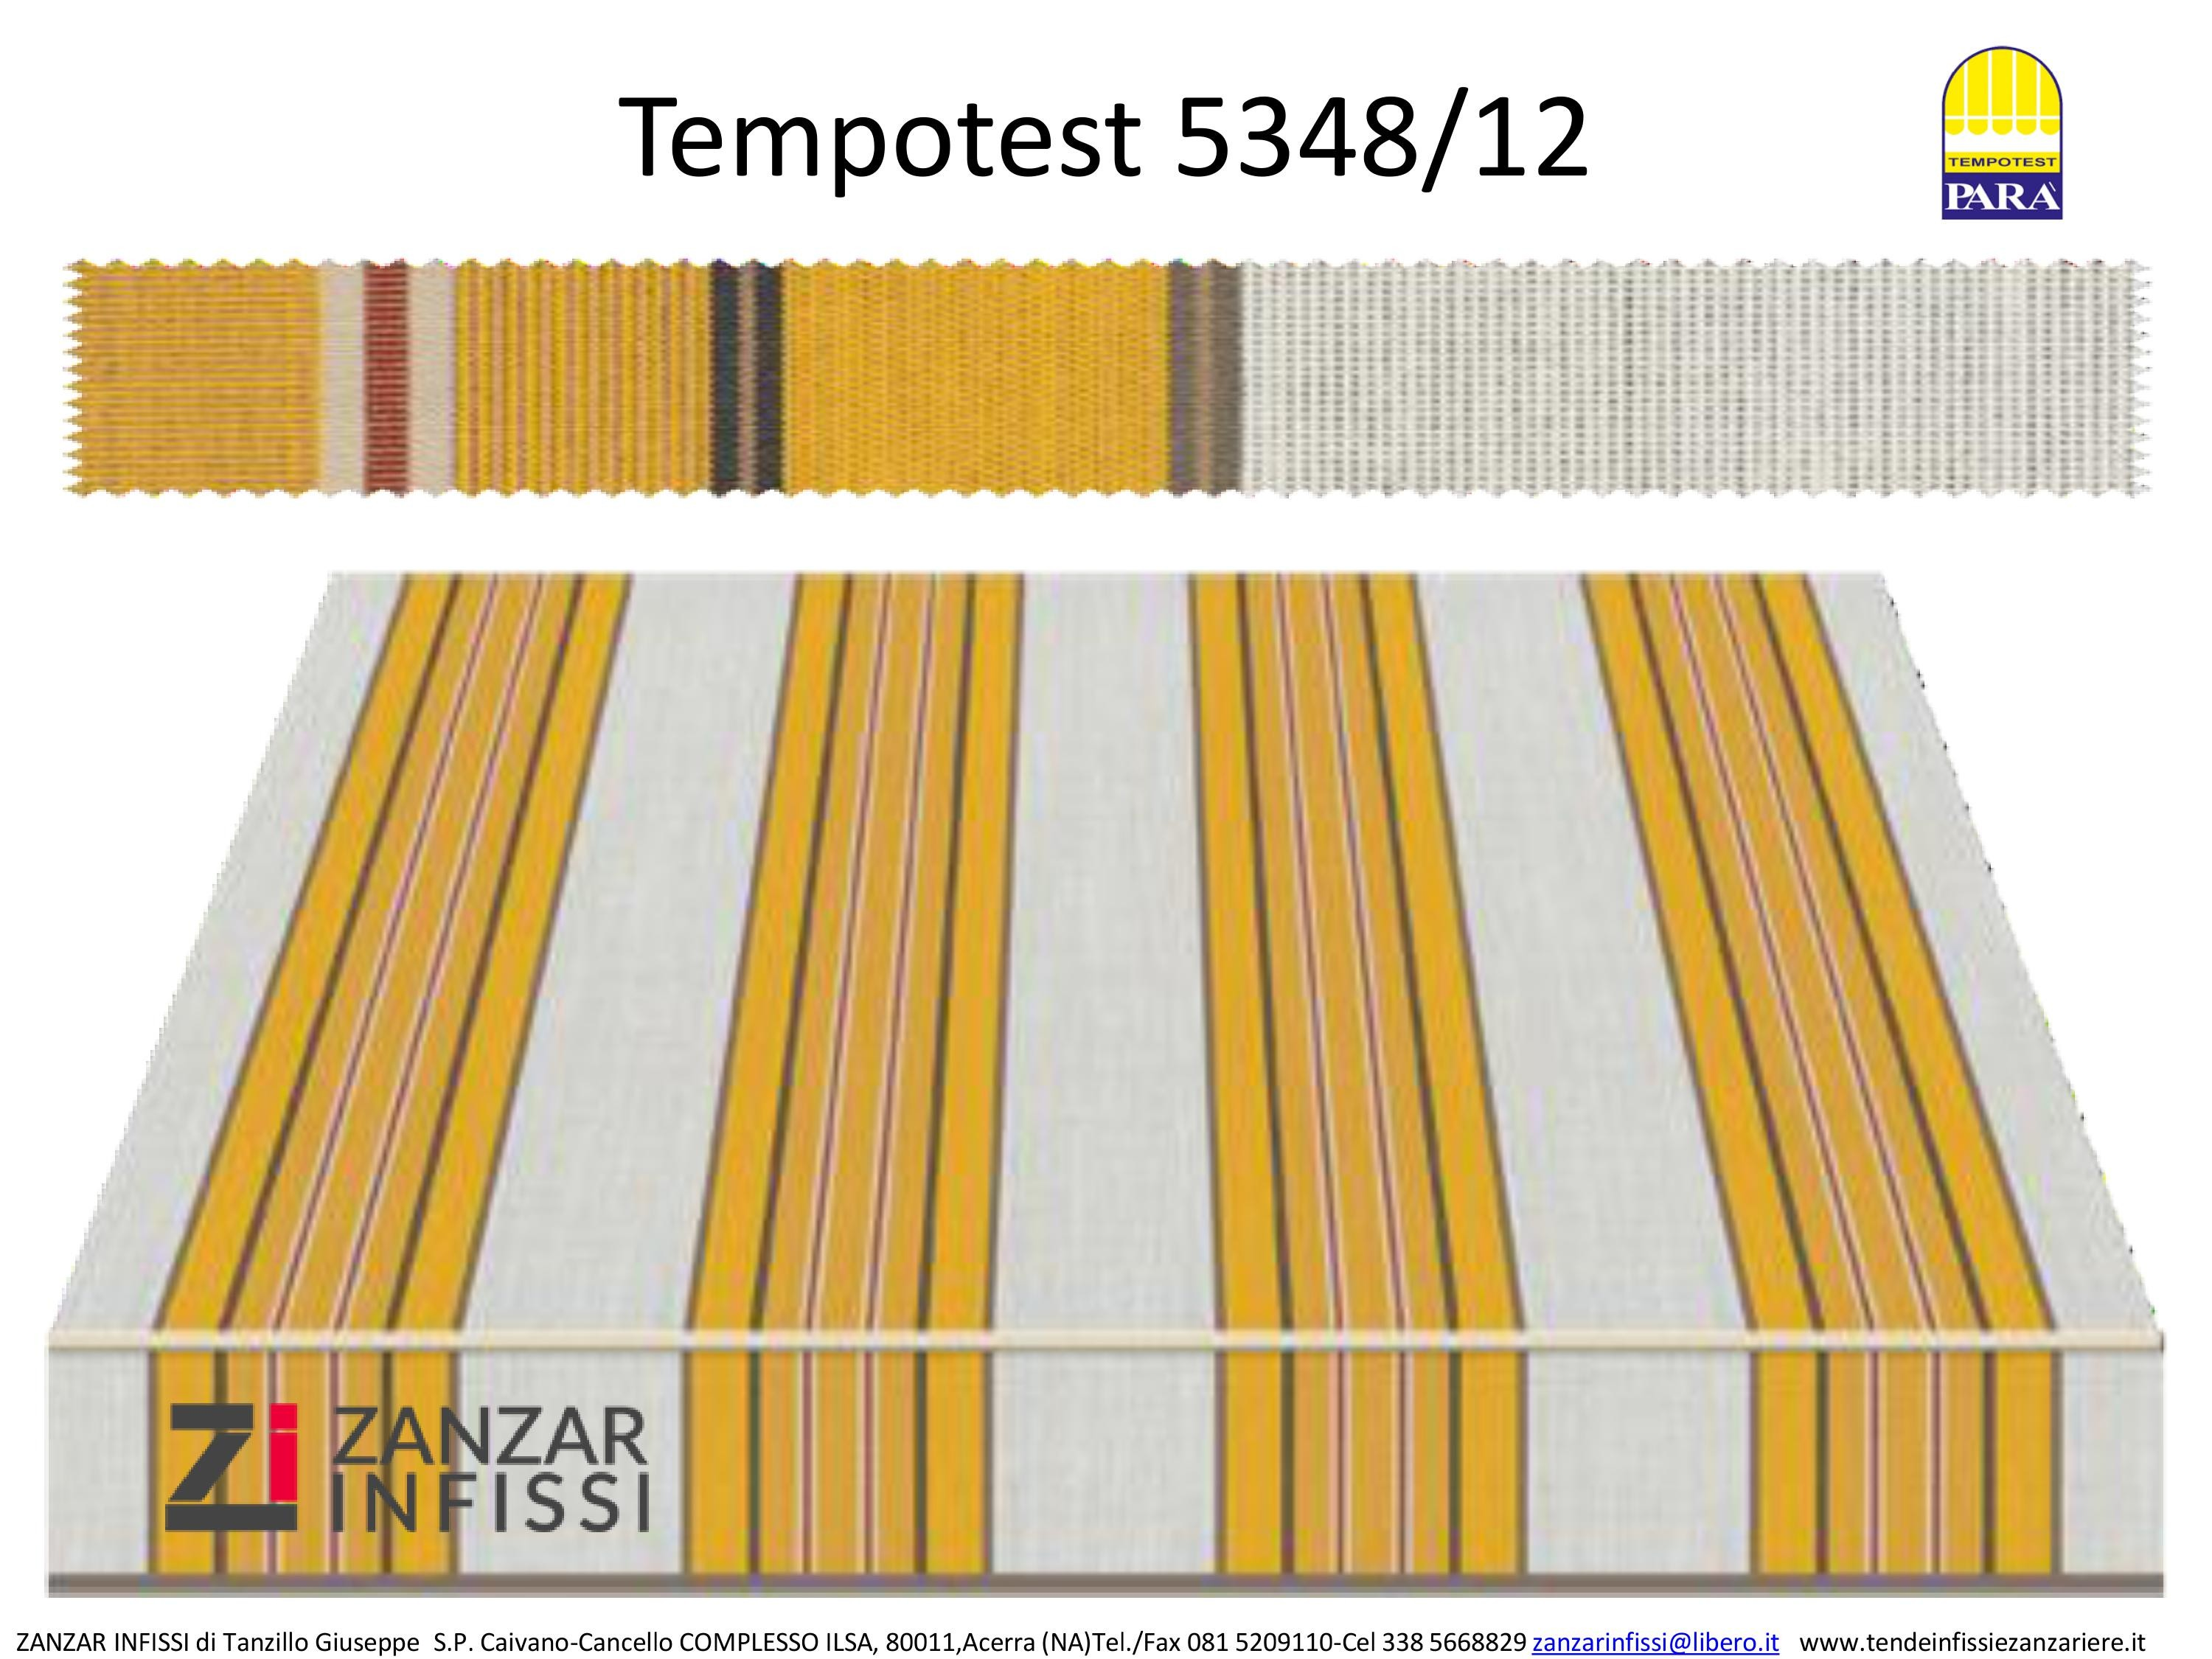 Tempotest 5348/12